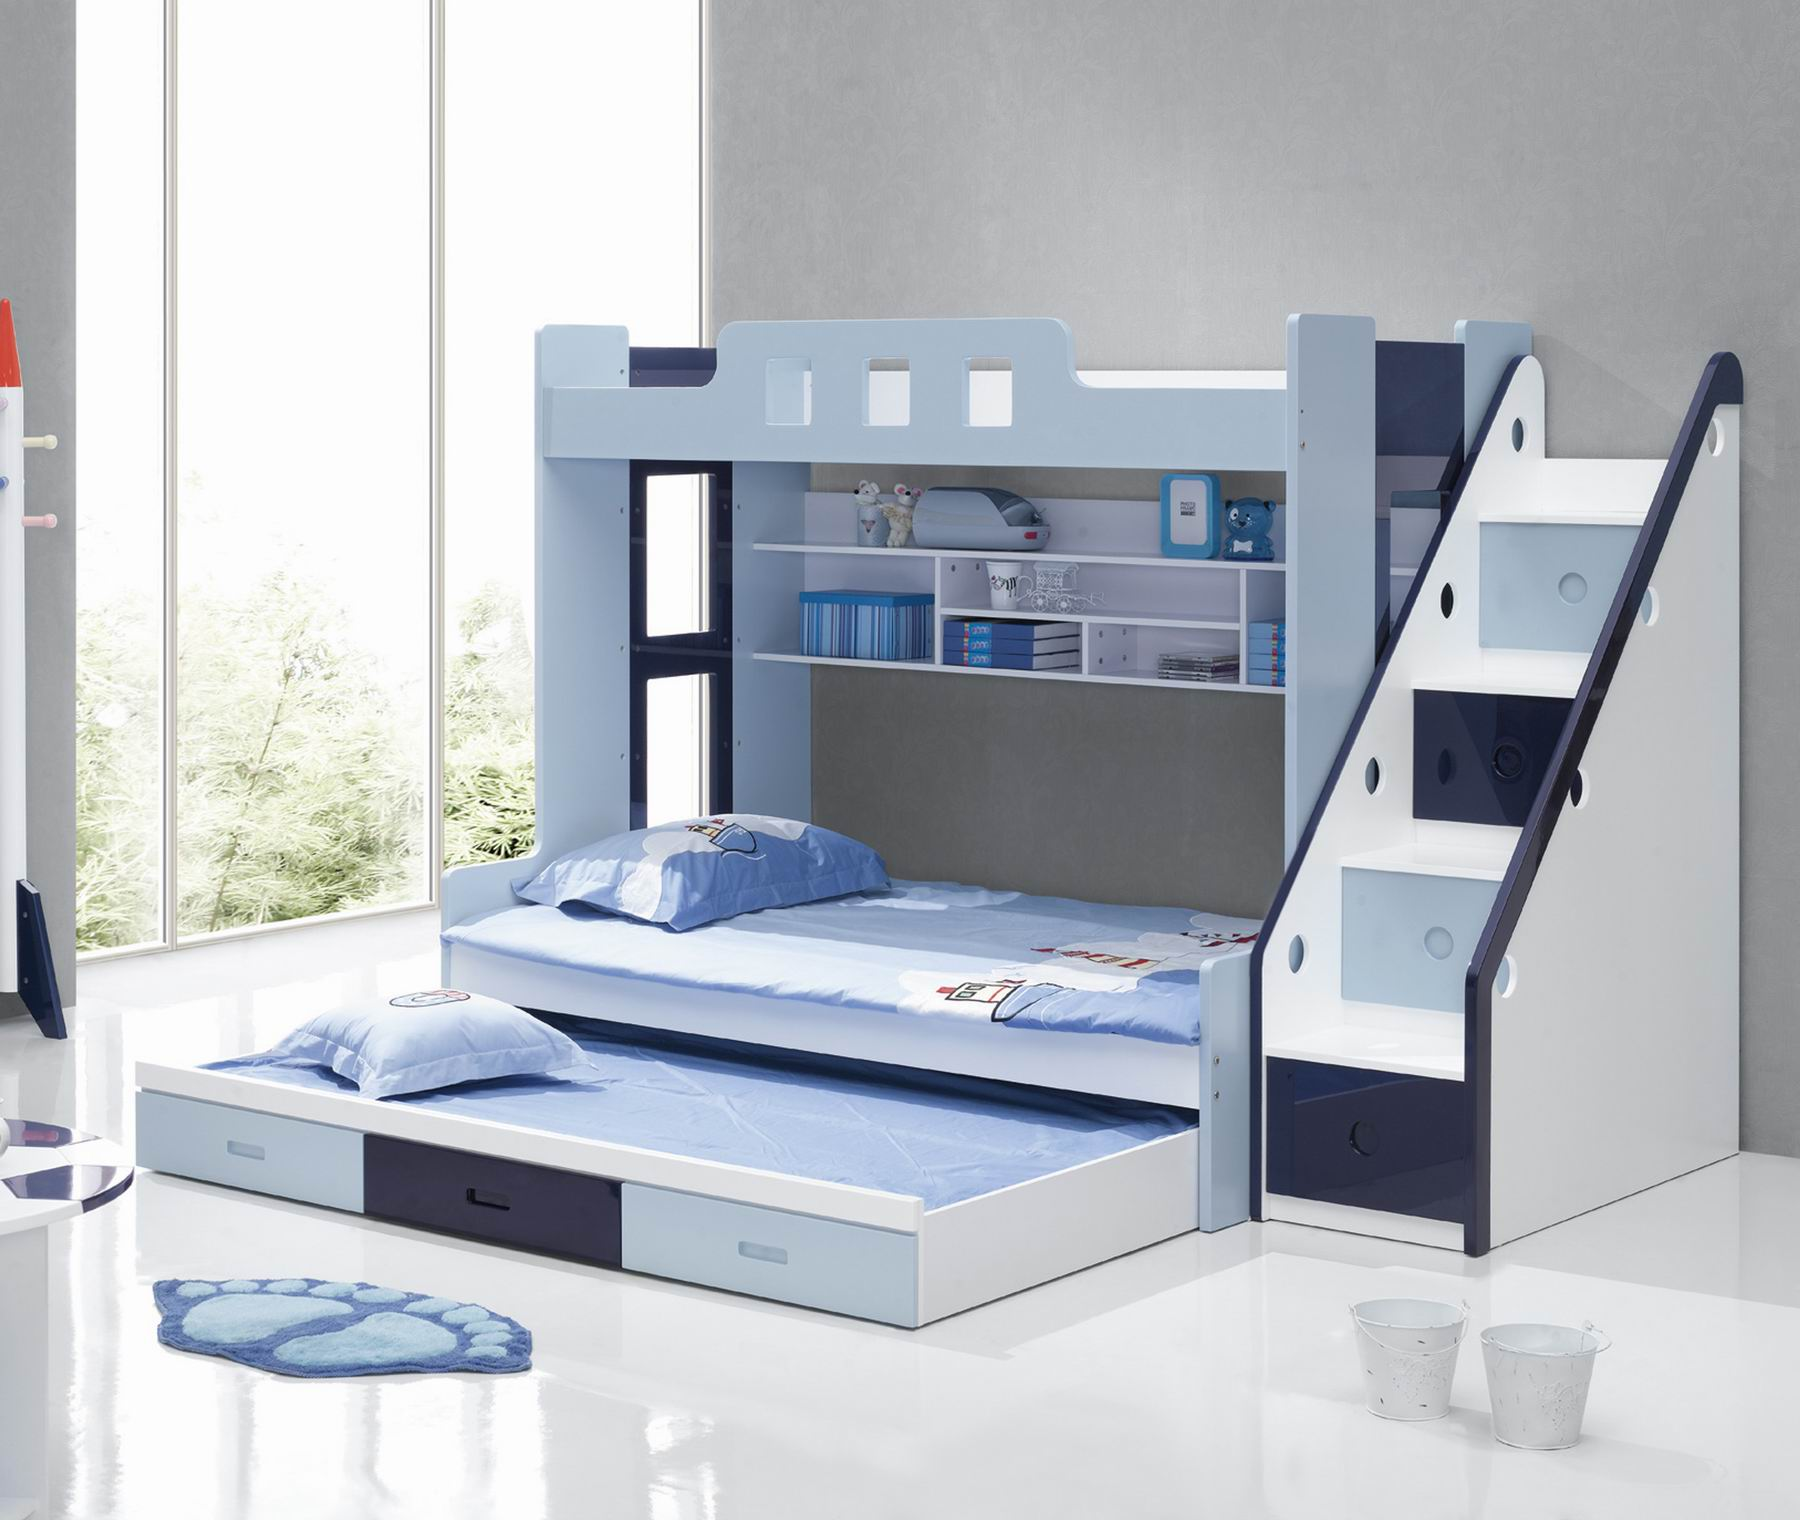 detail description for bunk beds design plans bunk beds design plans